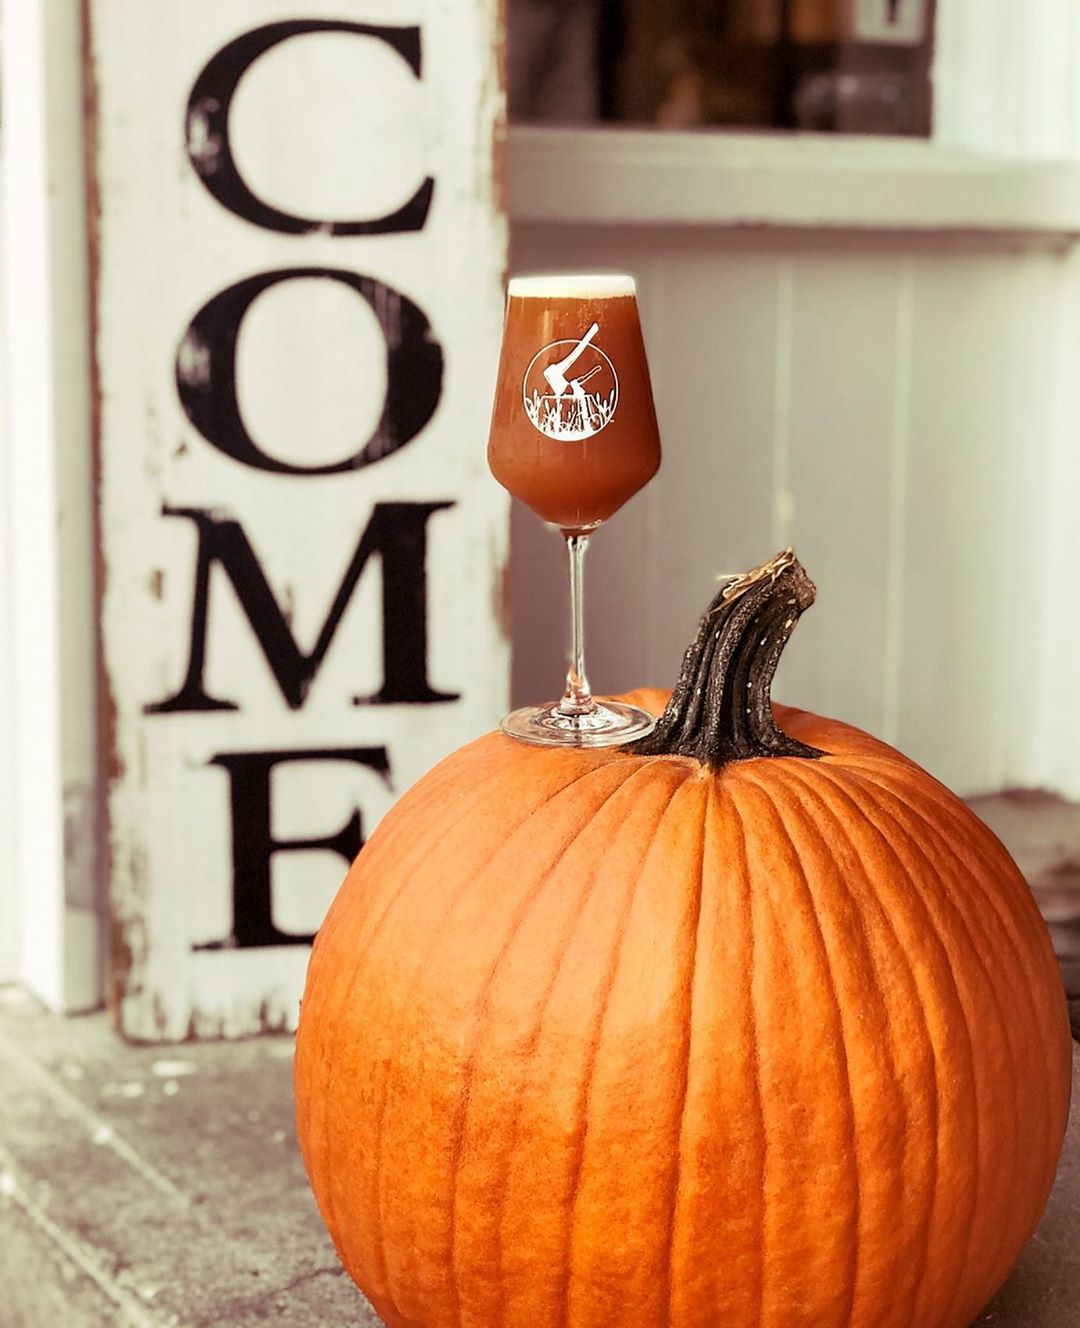 A Teku glass full of pumpkin IPA that is resting atop a large pumpkin on a porch.